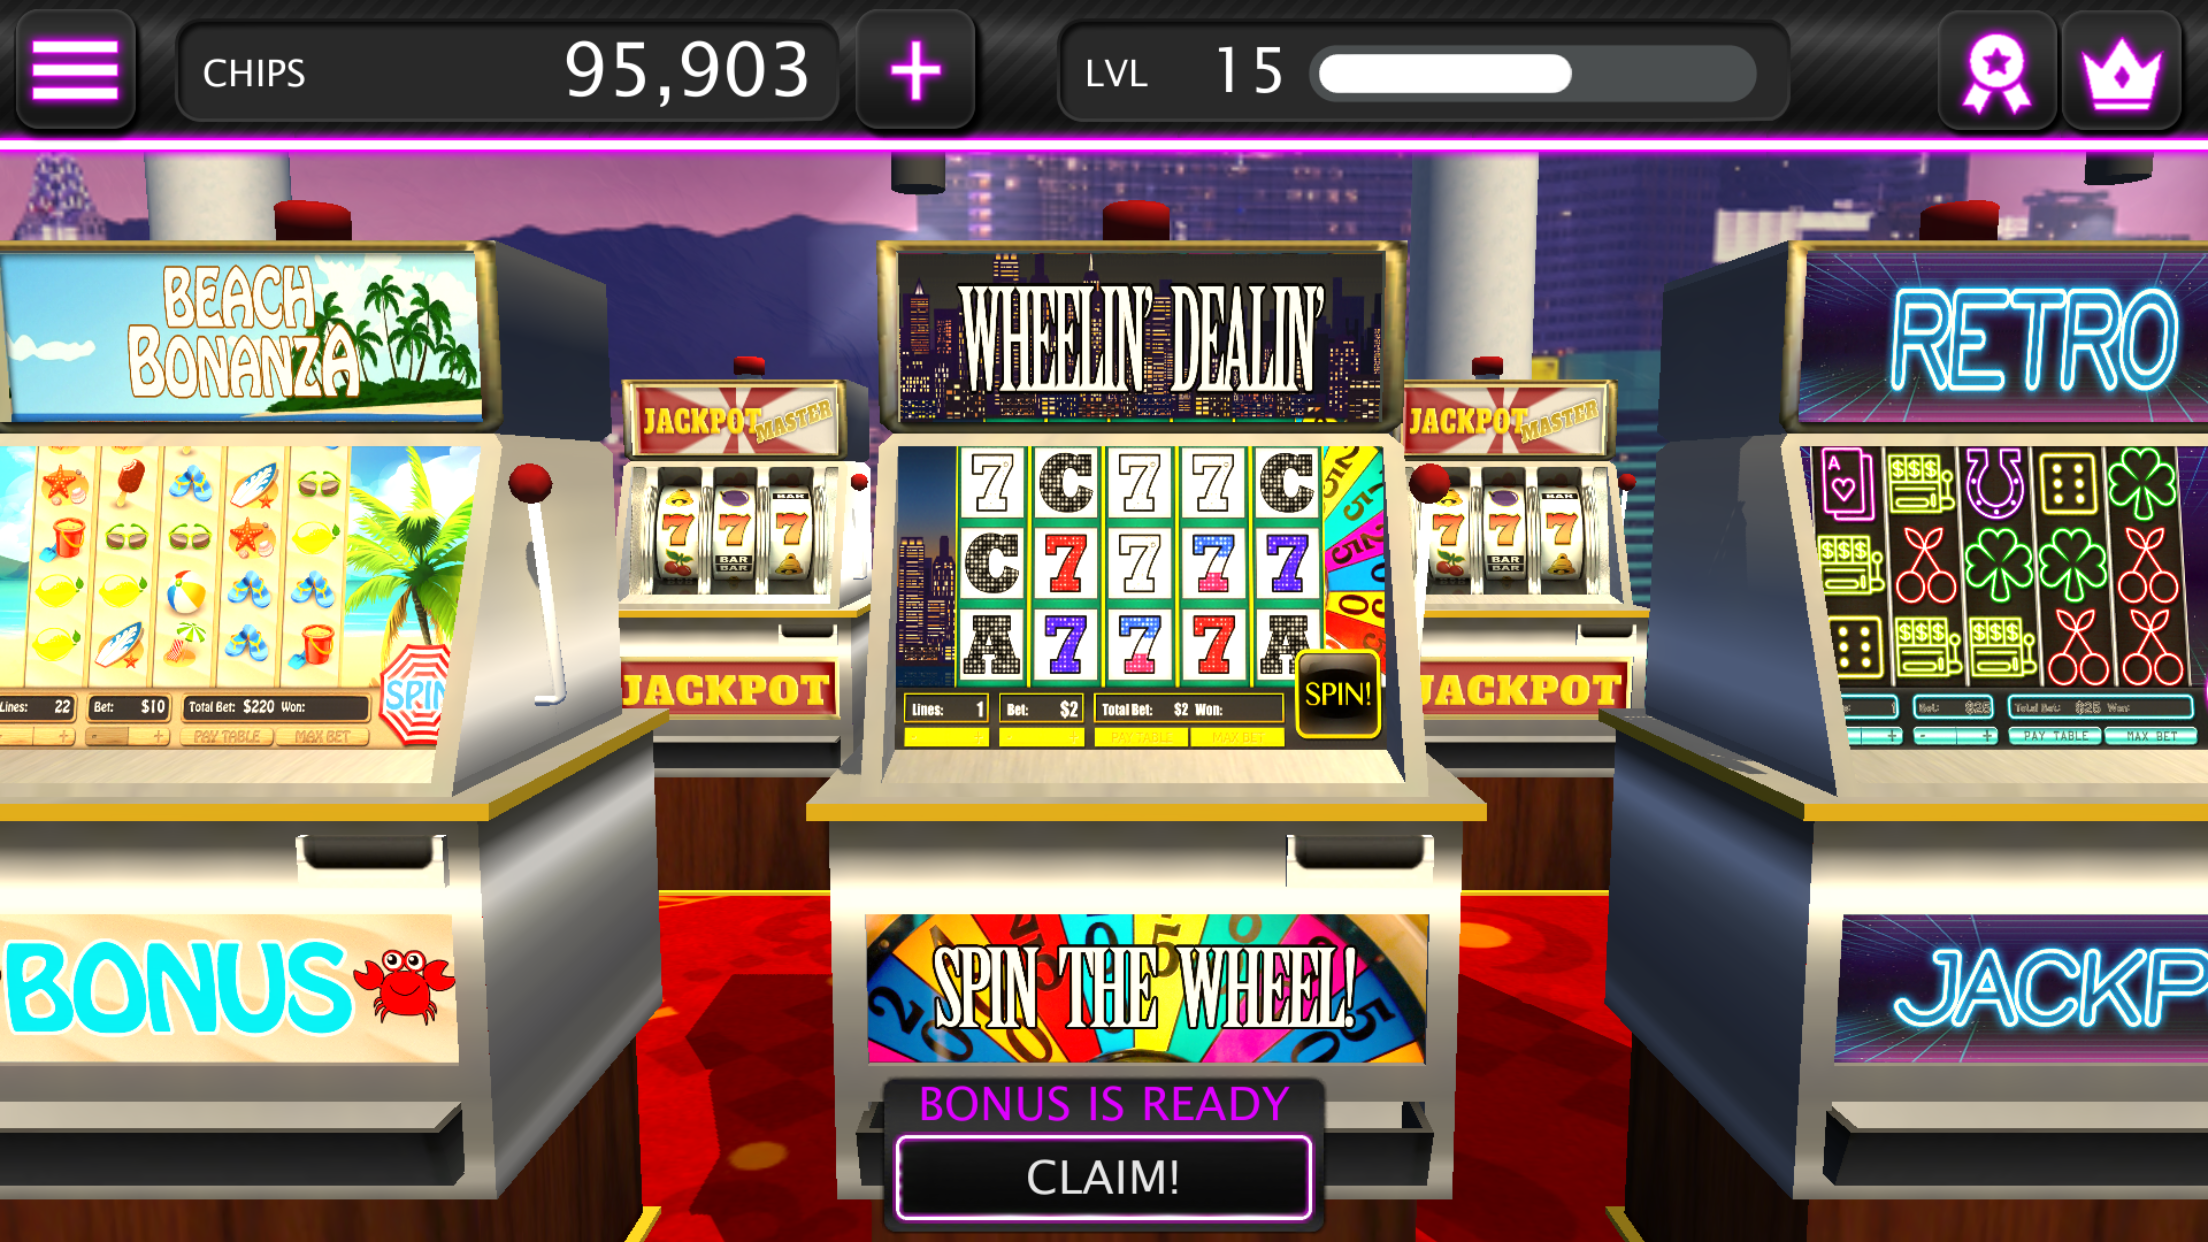 mighty slots mobile casino lobby